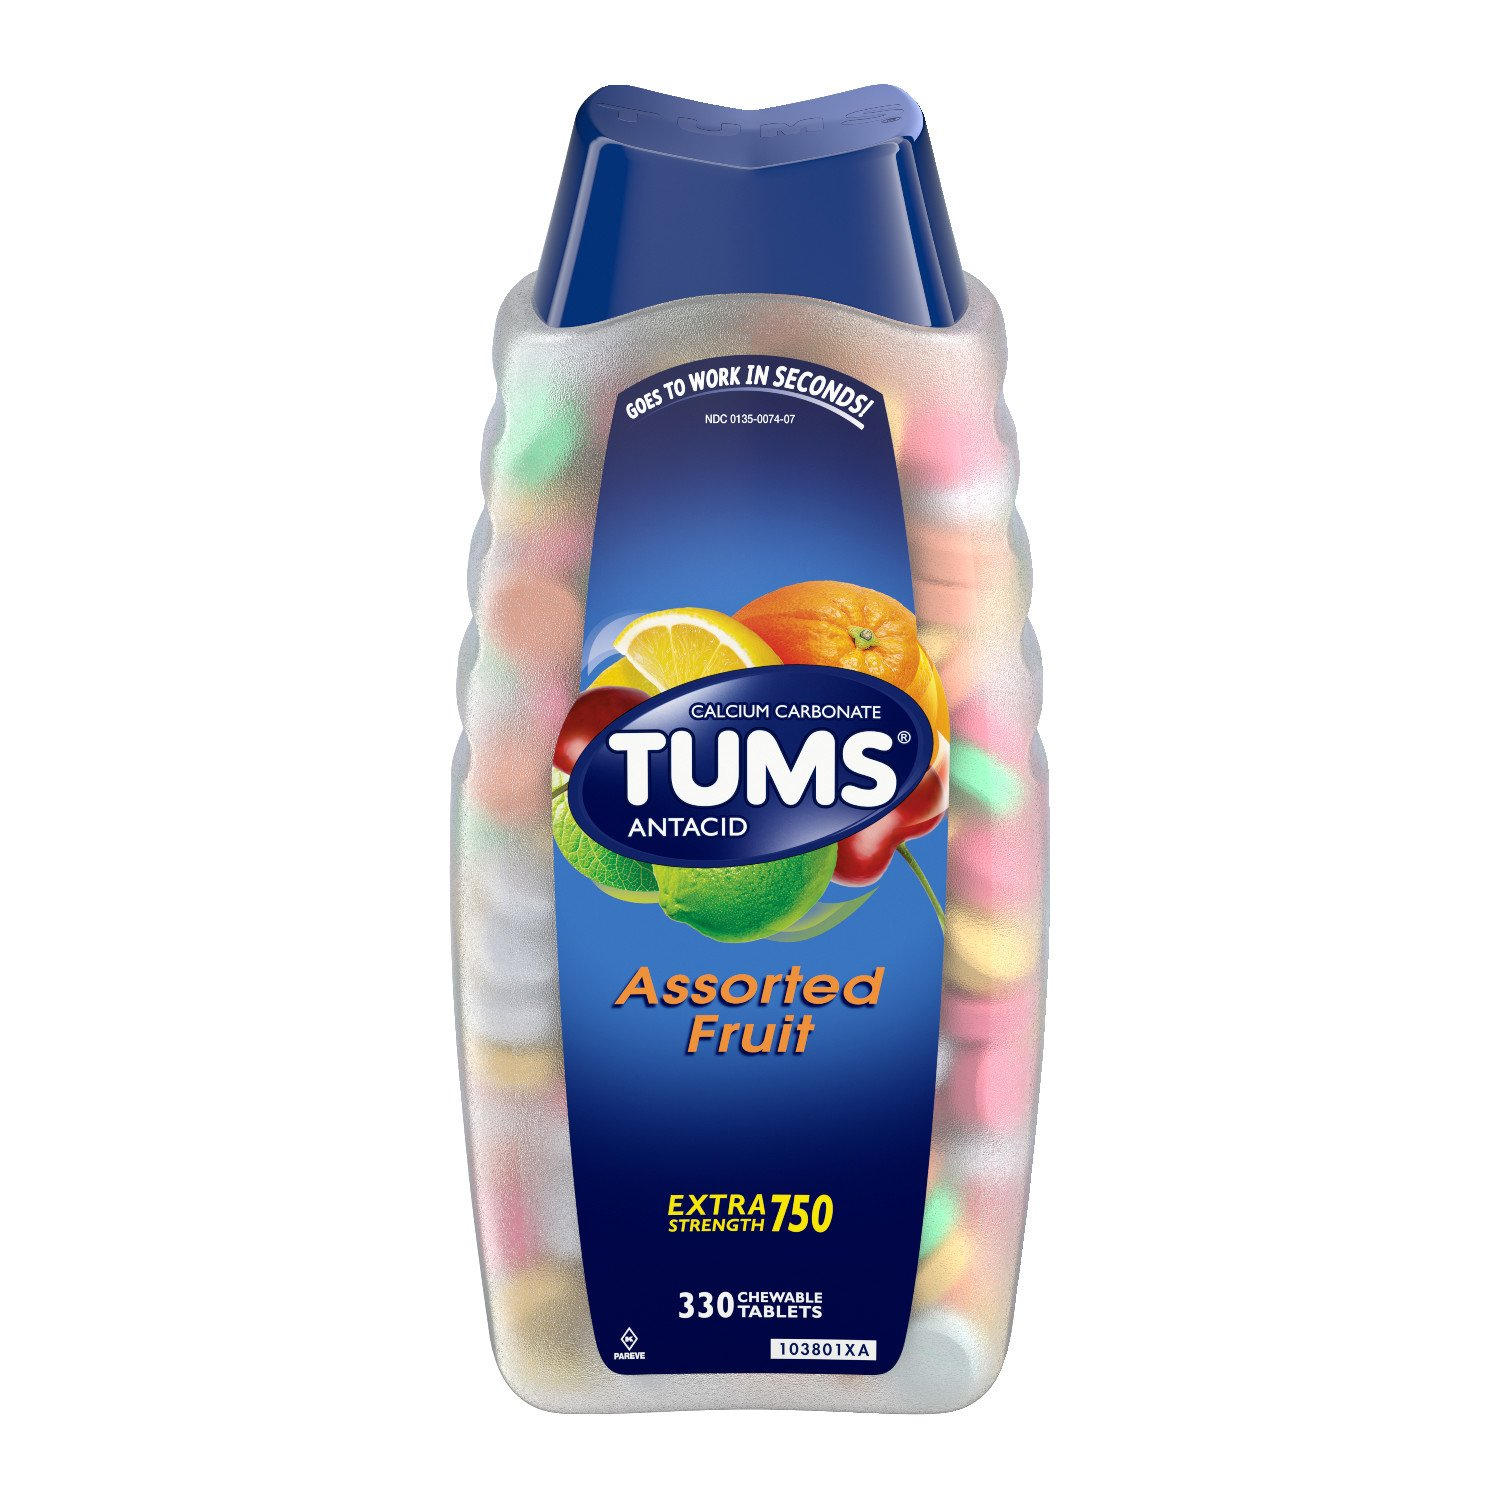 TUMS Extra Strength Assorted Fruit Antacid Chewable Tablets for Heartburn Relief, 330 count